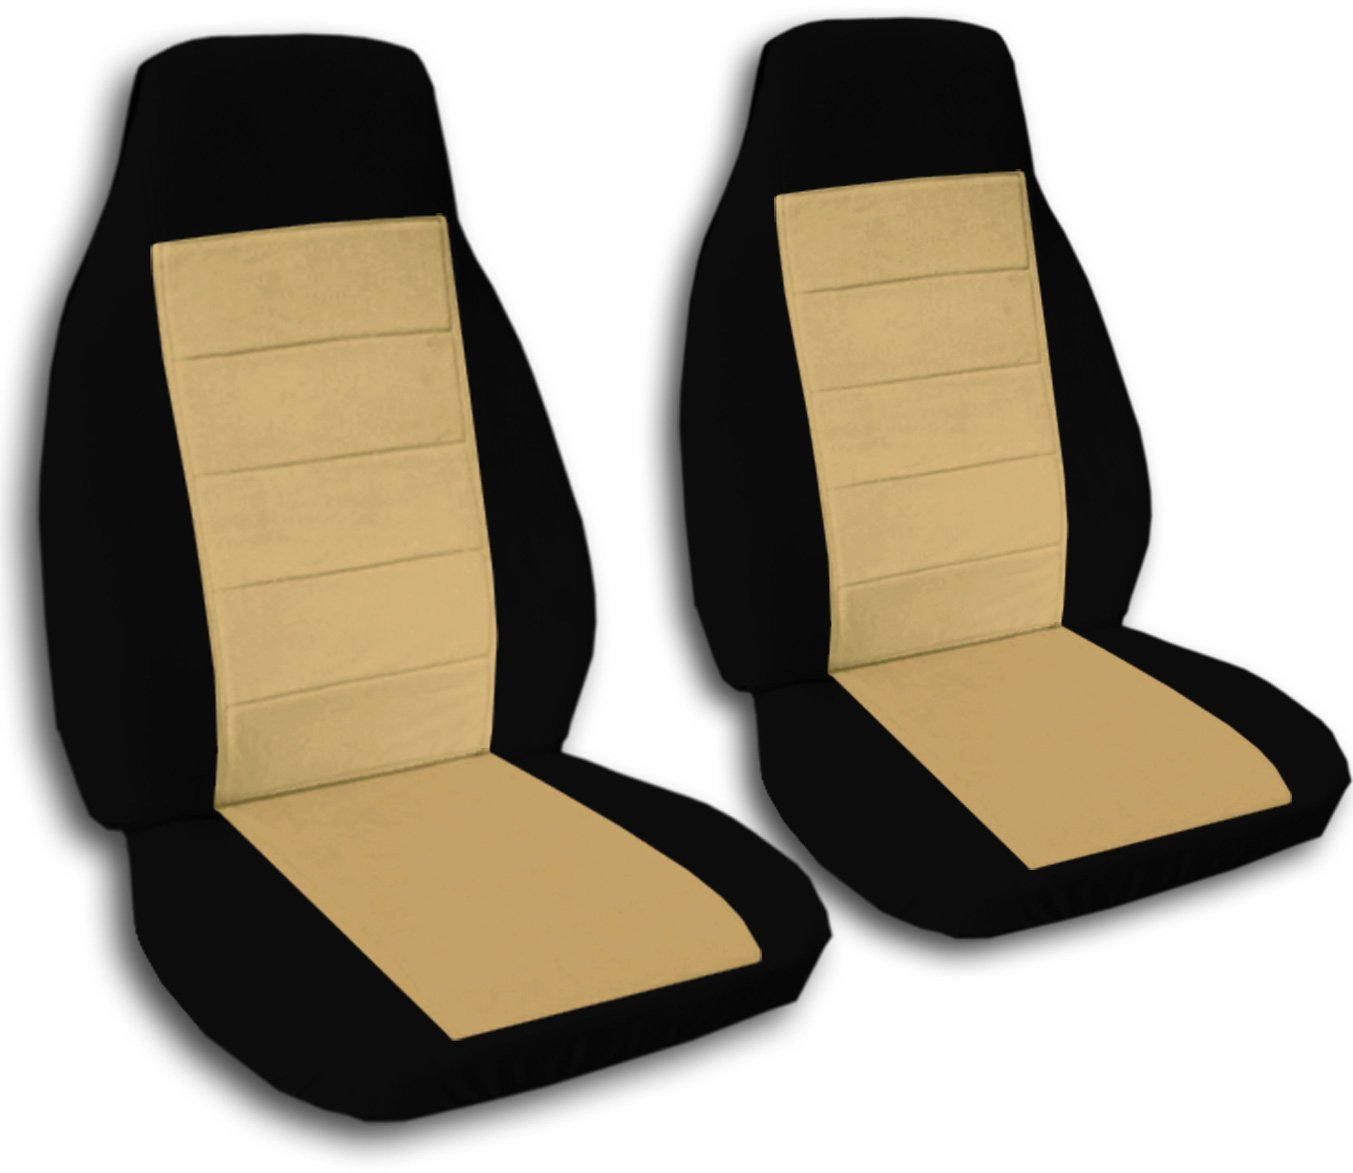 2005 2006 2007 2008 2009 2010 2011 Chevrolet 21 Colors Totally Covers Fits 2004-2012 Chevy Colorado//GMC Canyon Two-Tone Truck Bucket Seat Covers Black and Charcoal